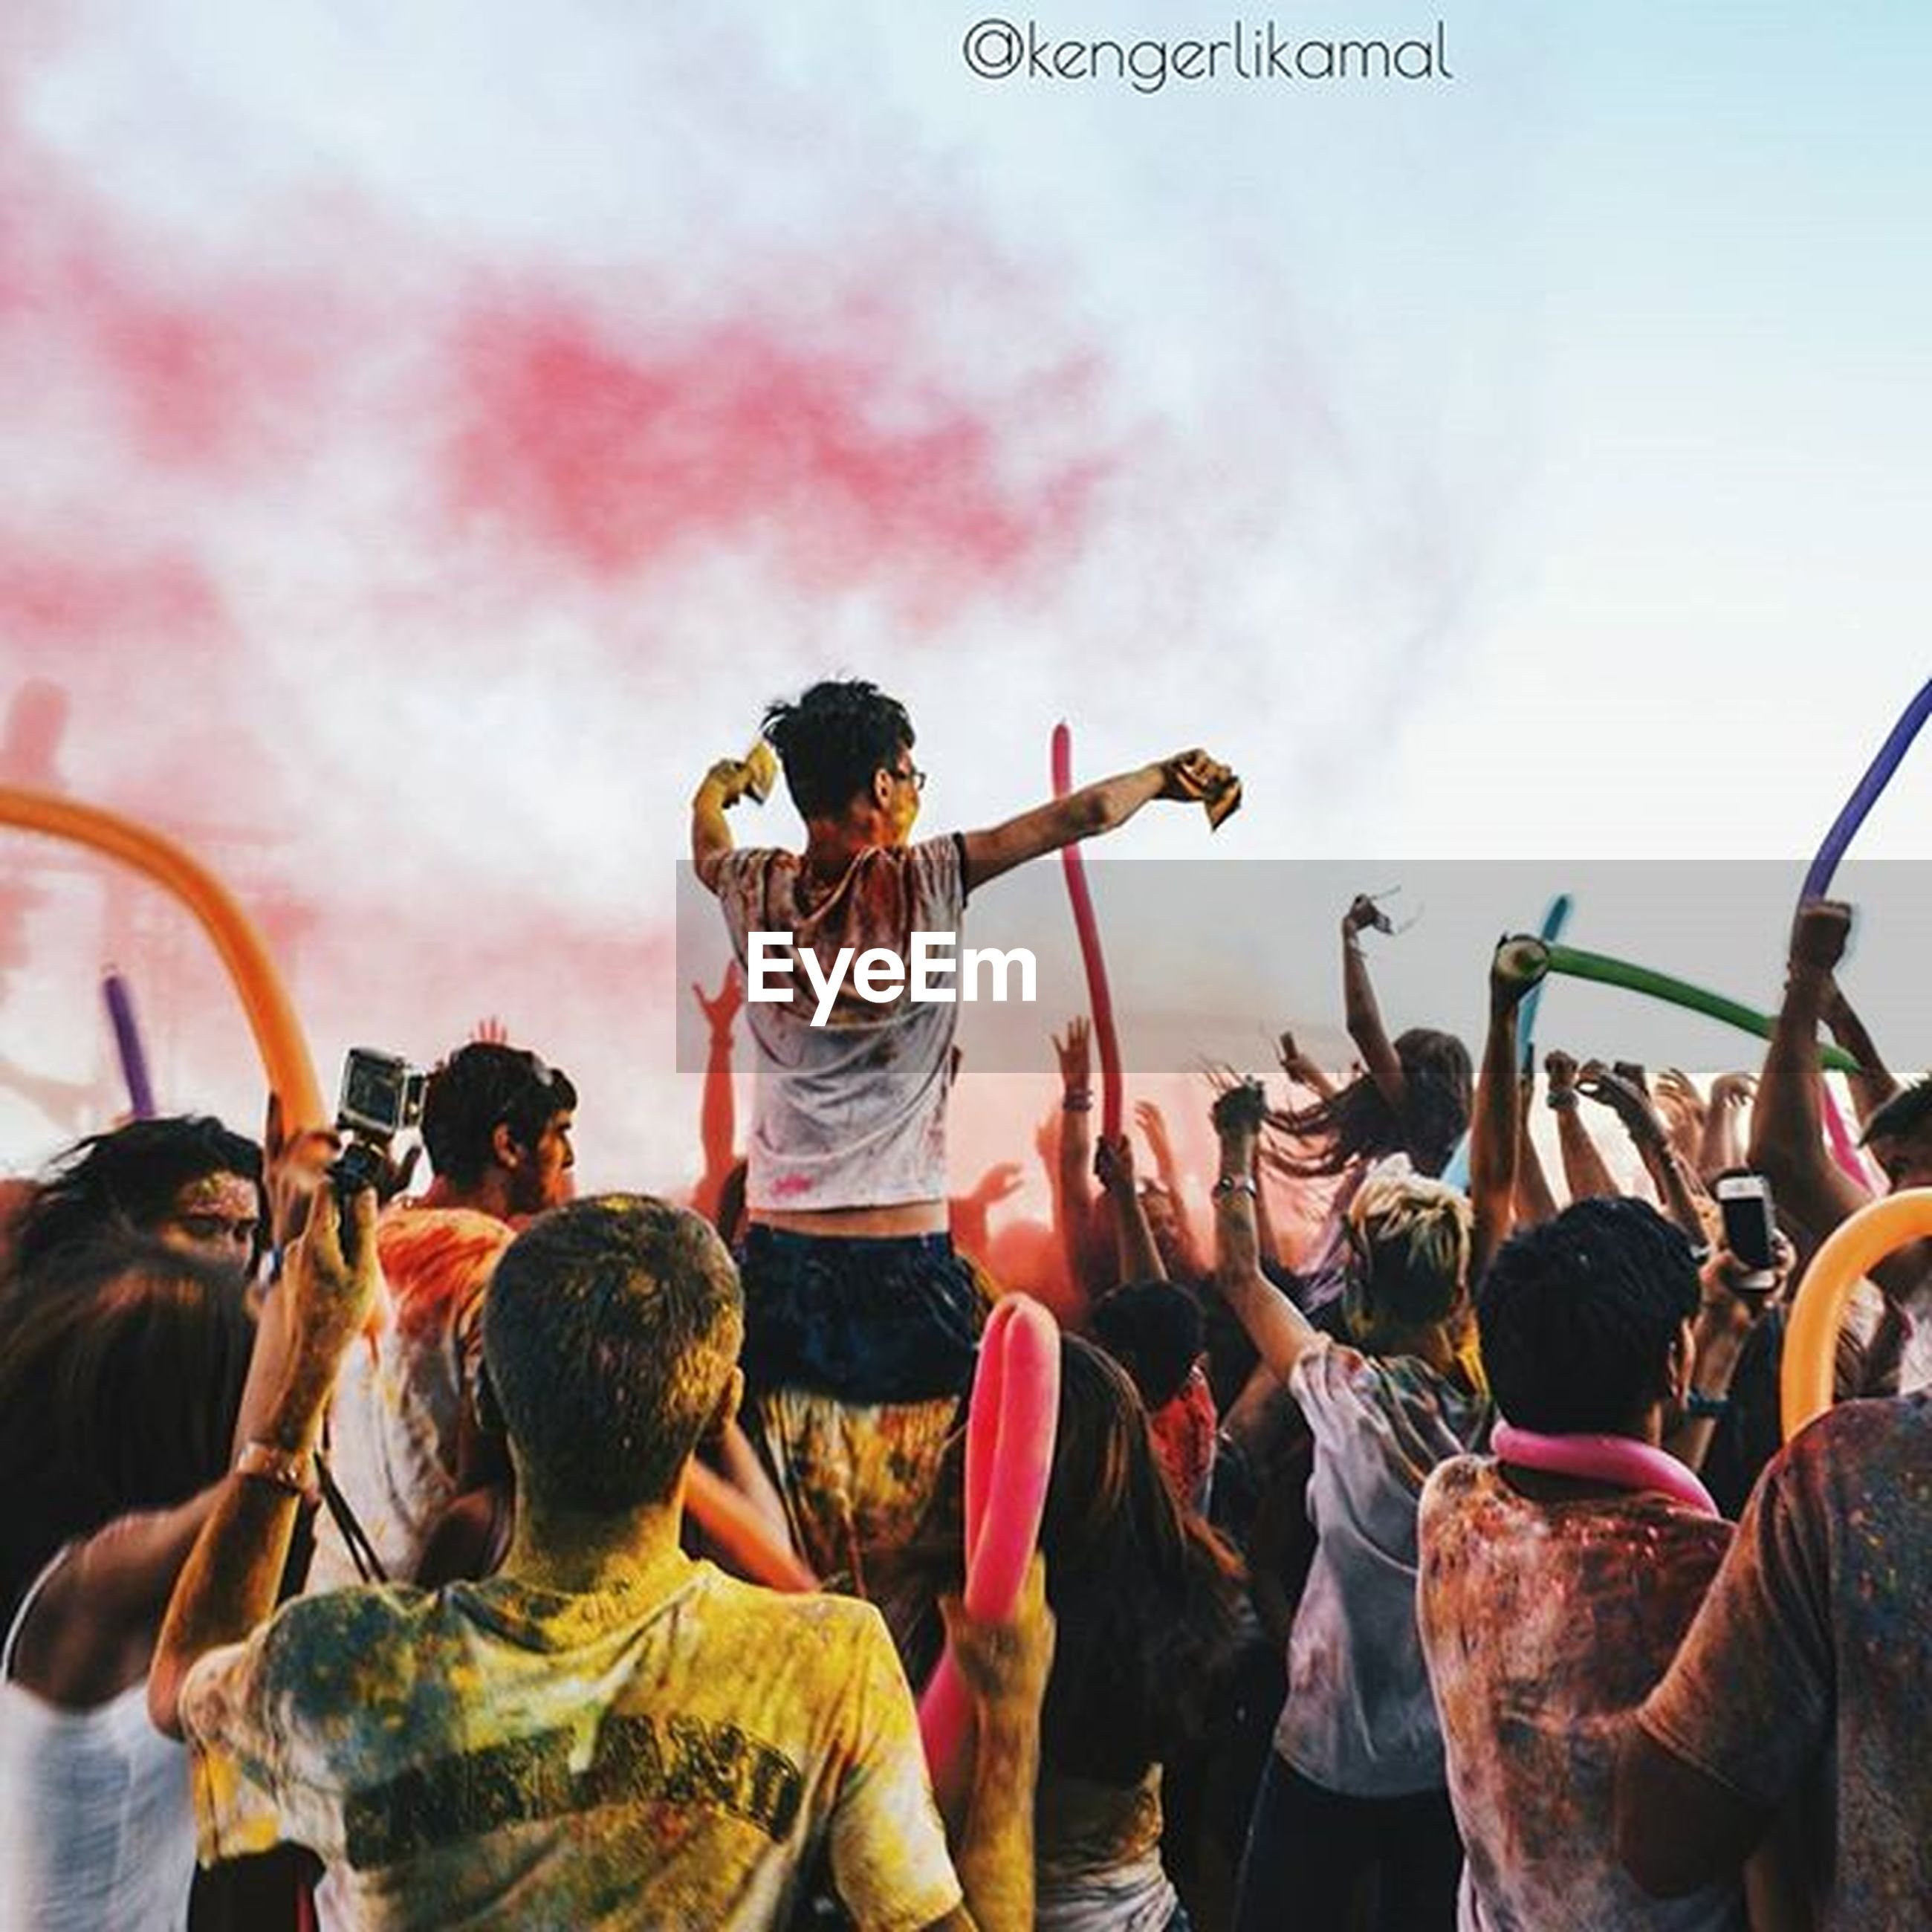 lifestyles, men, leisure activity, sky, large group of people, person, rear view, togetherness, casual clothing, cloud - sky, standing, cloudy, enjoyment, outdoors, cloud, crowd, full length, day, fun